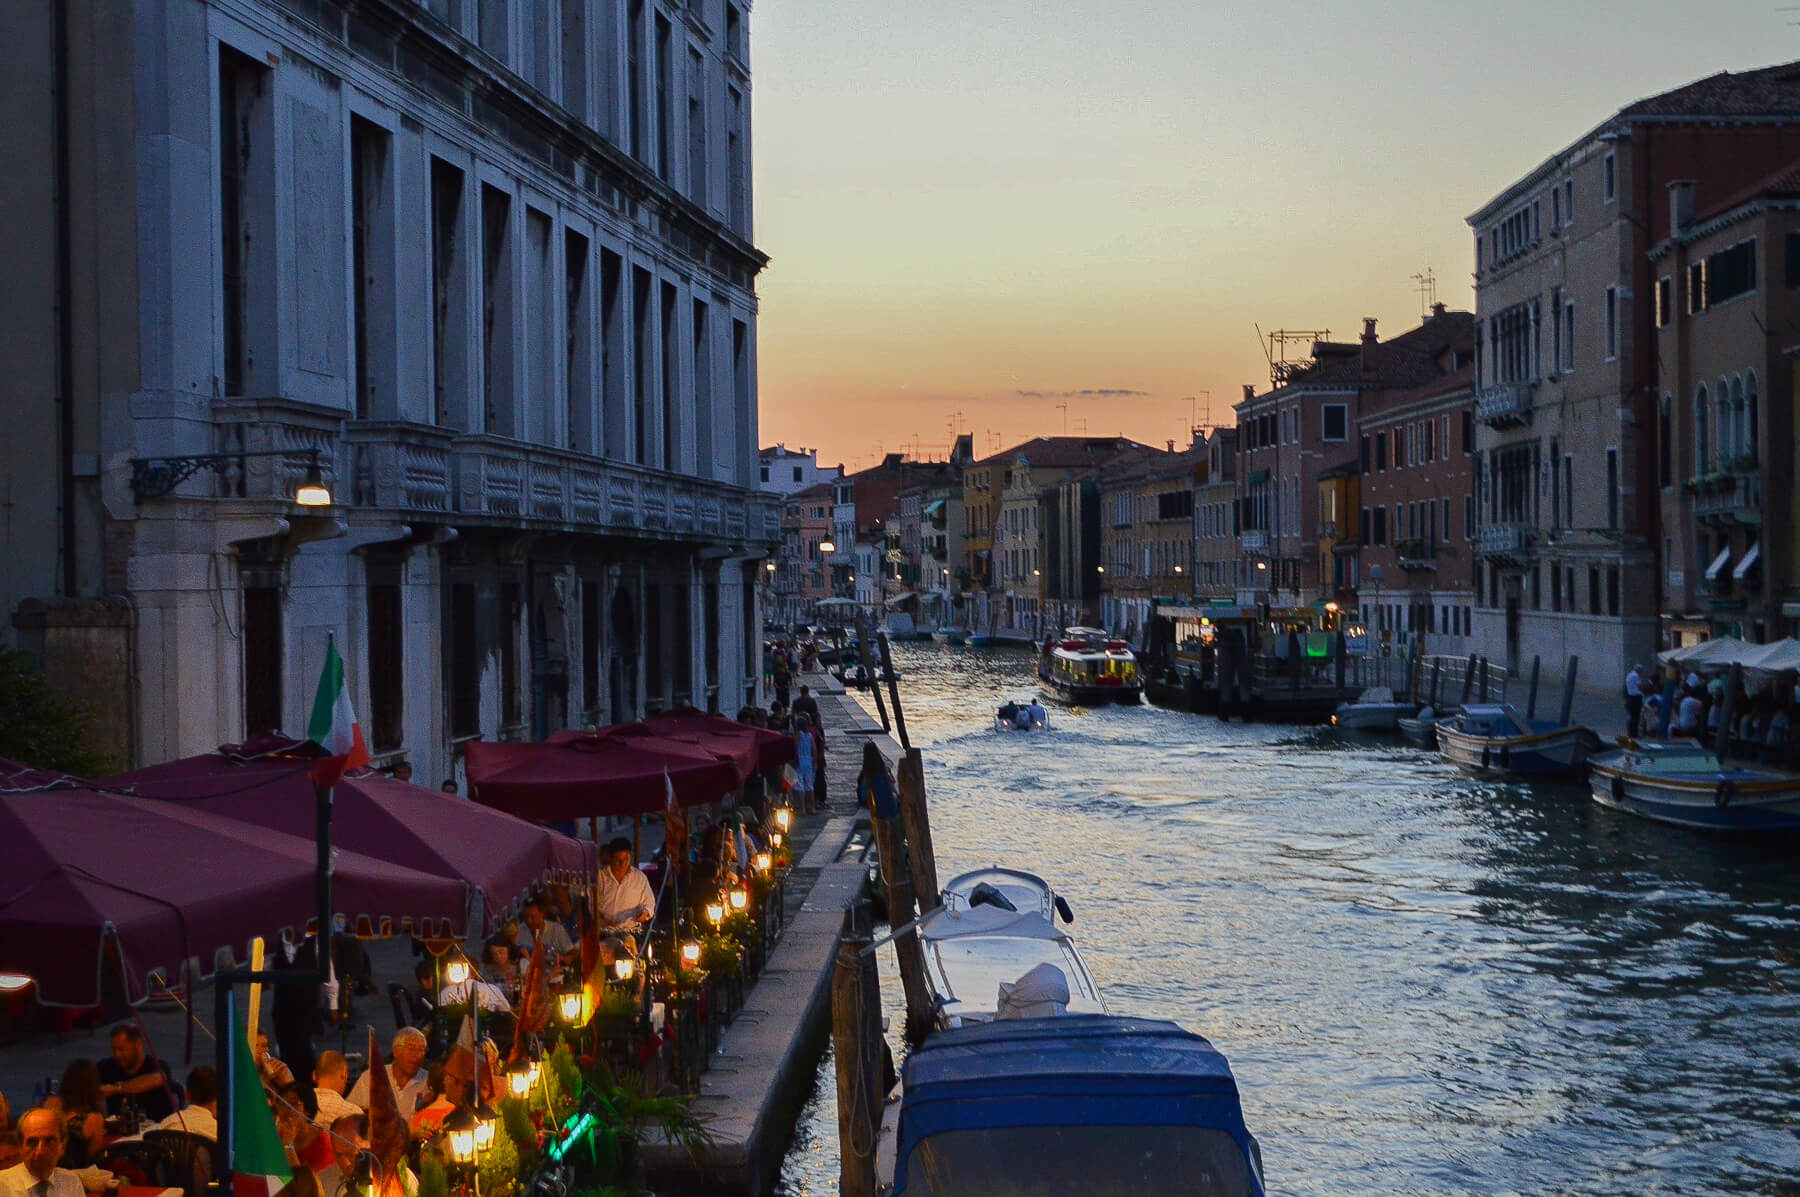 sunset behind canal with boats and restaurants